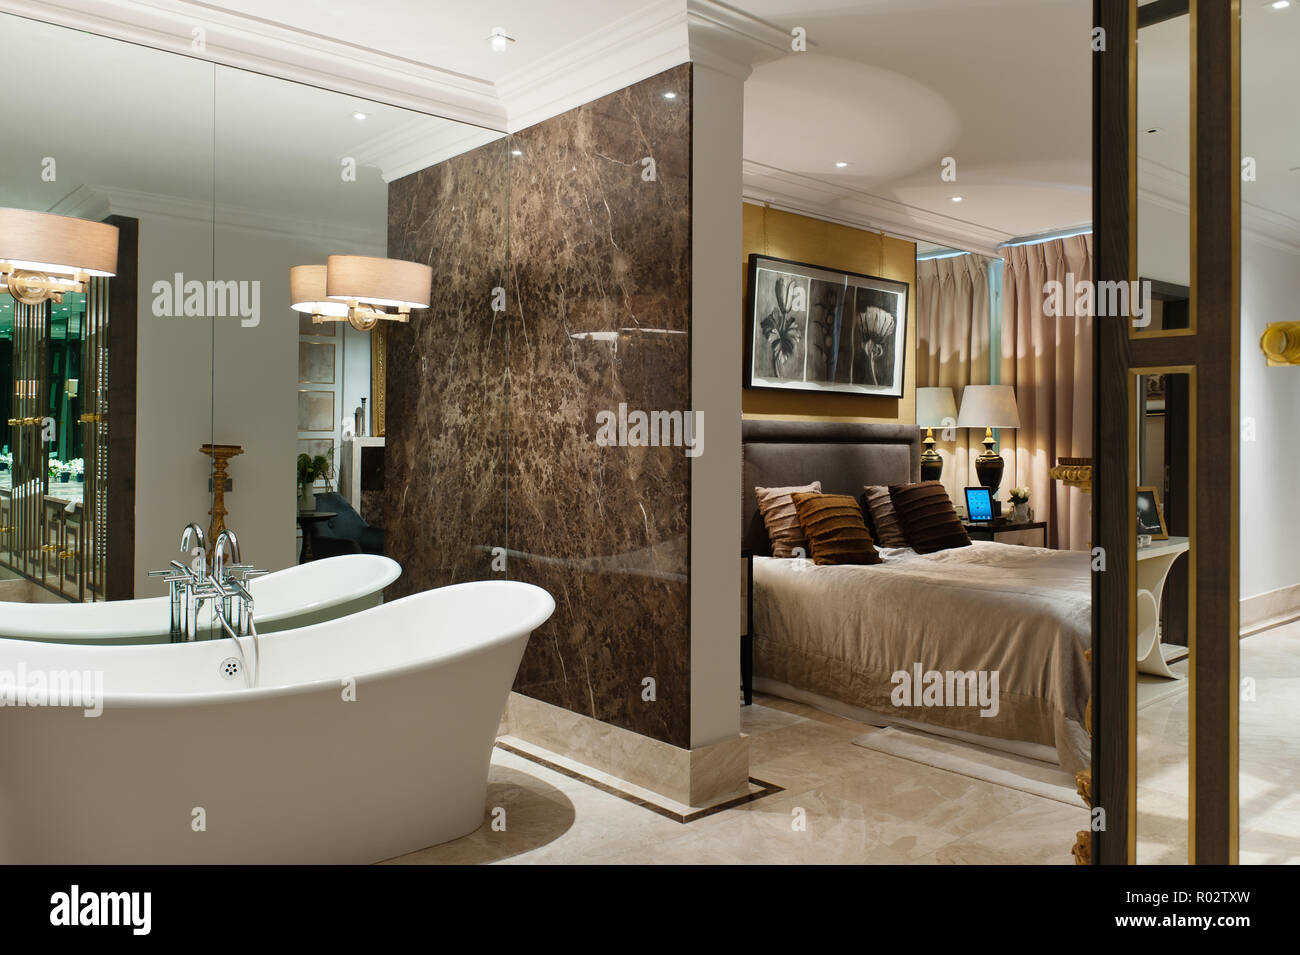 Luxury ensuite bathroom with mirrored wall - Stock Image